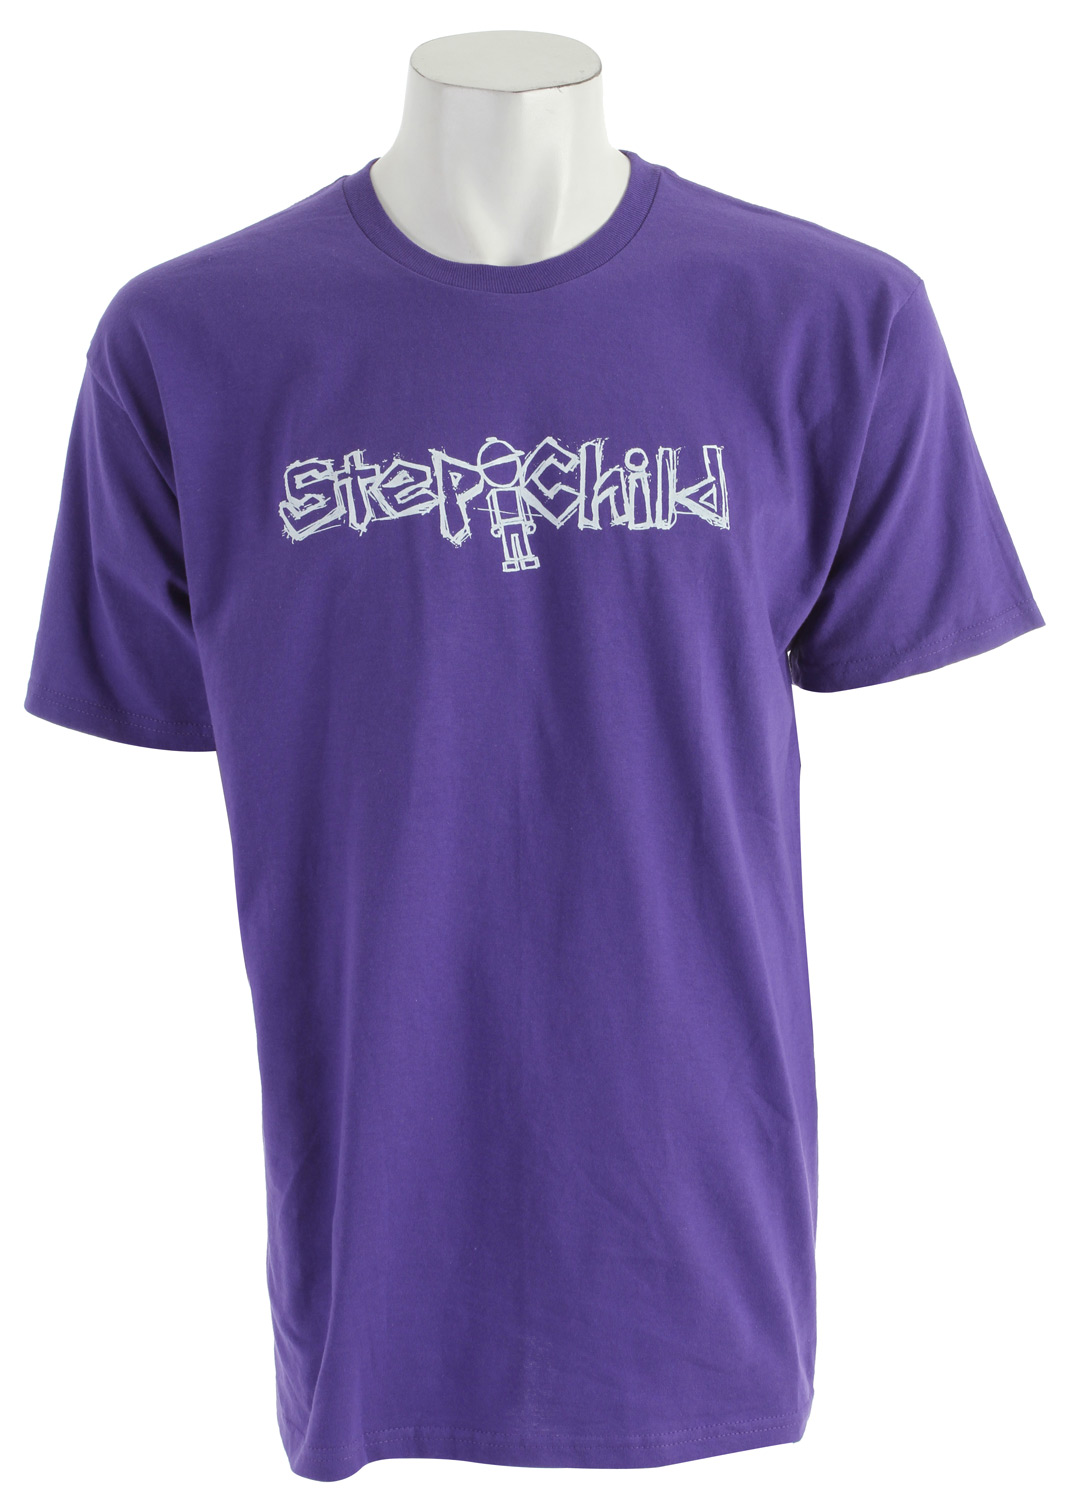 Key Features of The Stepchild Dirtbag T-Shirt: Regular Fit Crew Neck Short Sleeve 100% jersey cotton Screened logo on front - $10.95